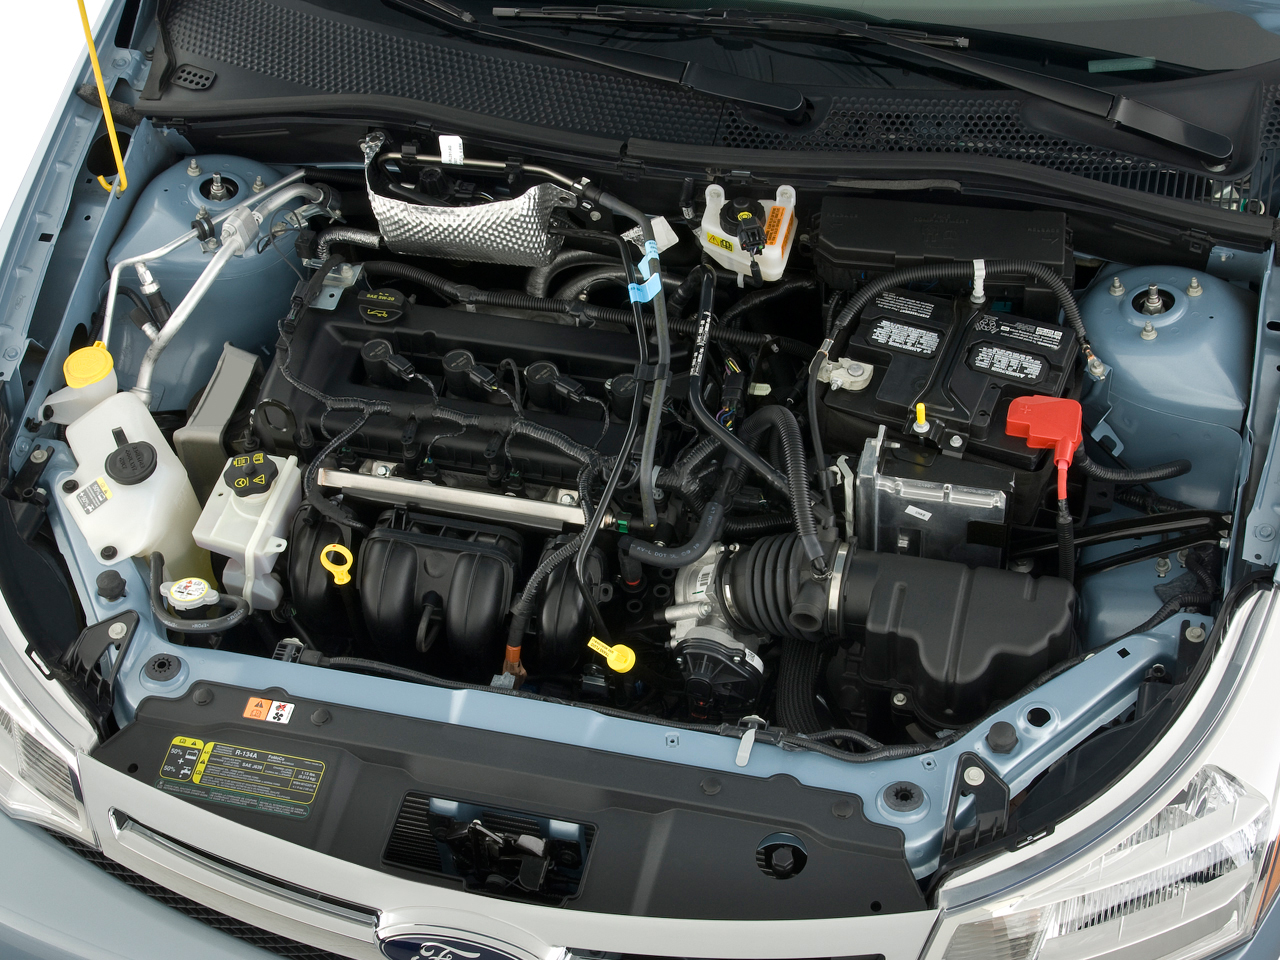 FORD FOCUS engine